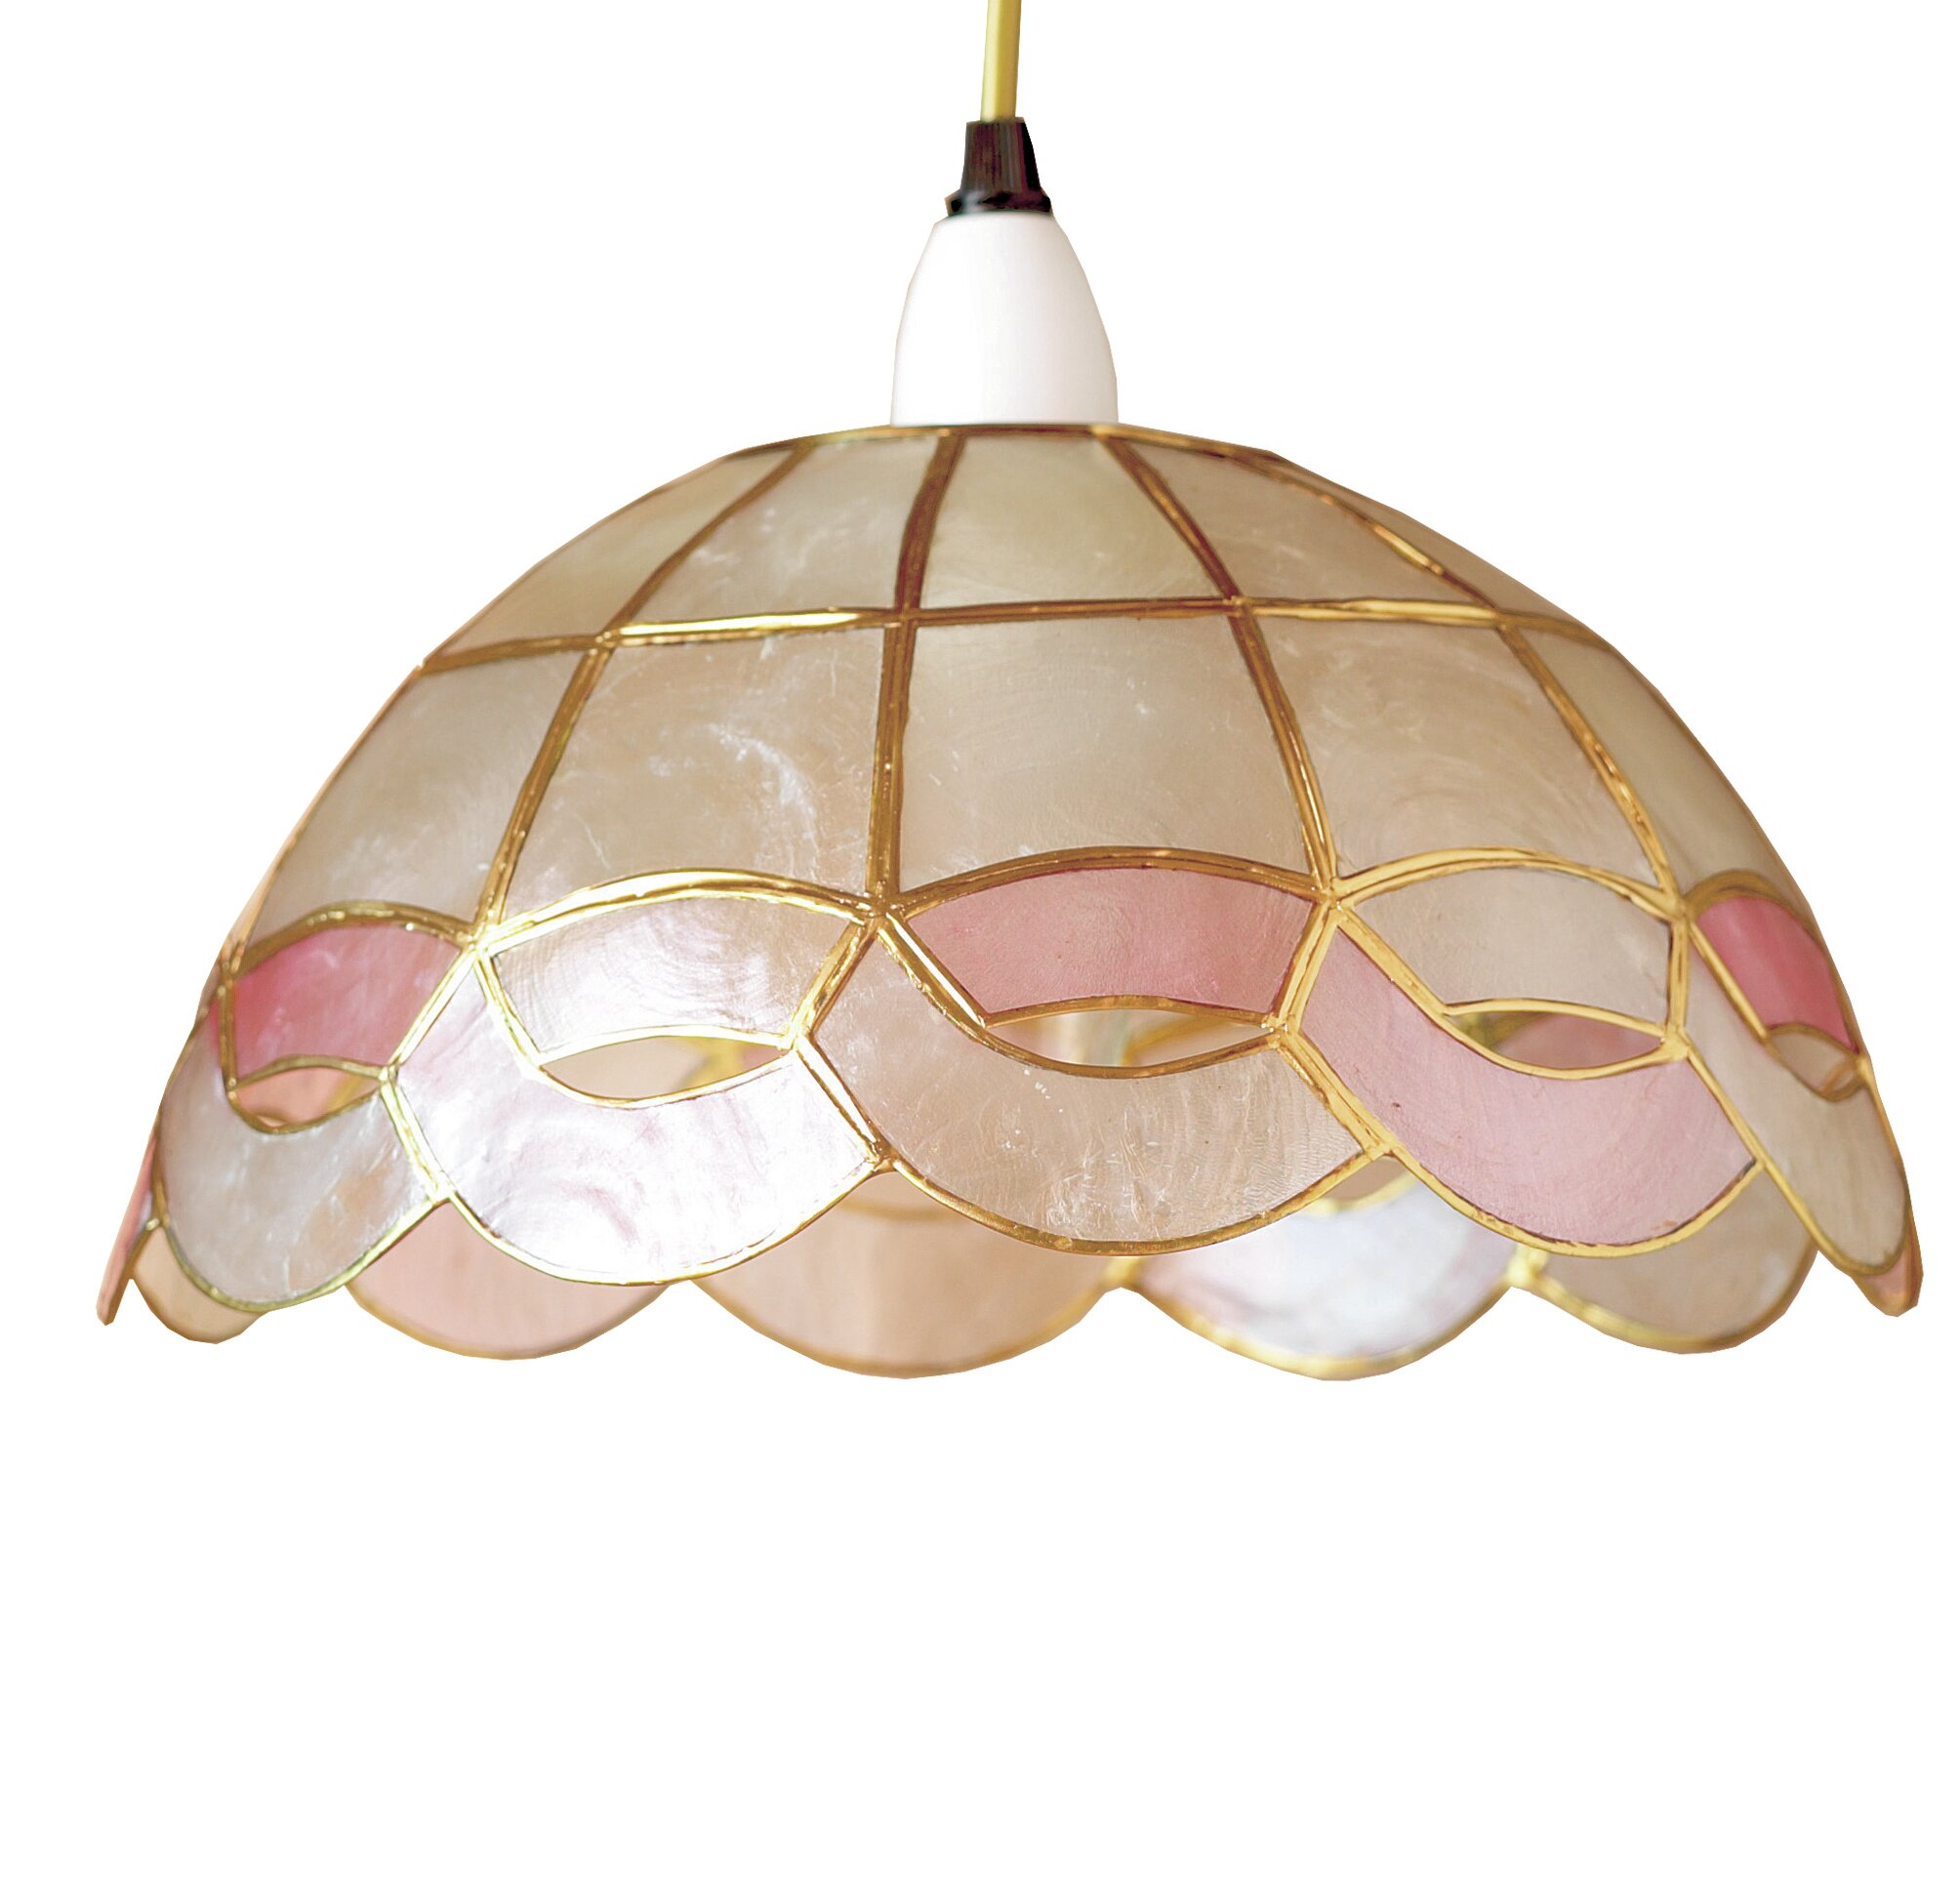 capiz shell lighting fixtures. Loxton Lighting 28cm Sputnik Capiz Shell Bowl Pendant Shade \u0026 Reviews | Wayfair.co.uk Fixtures